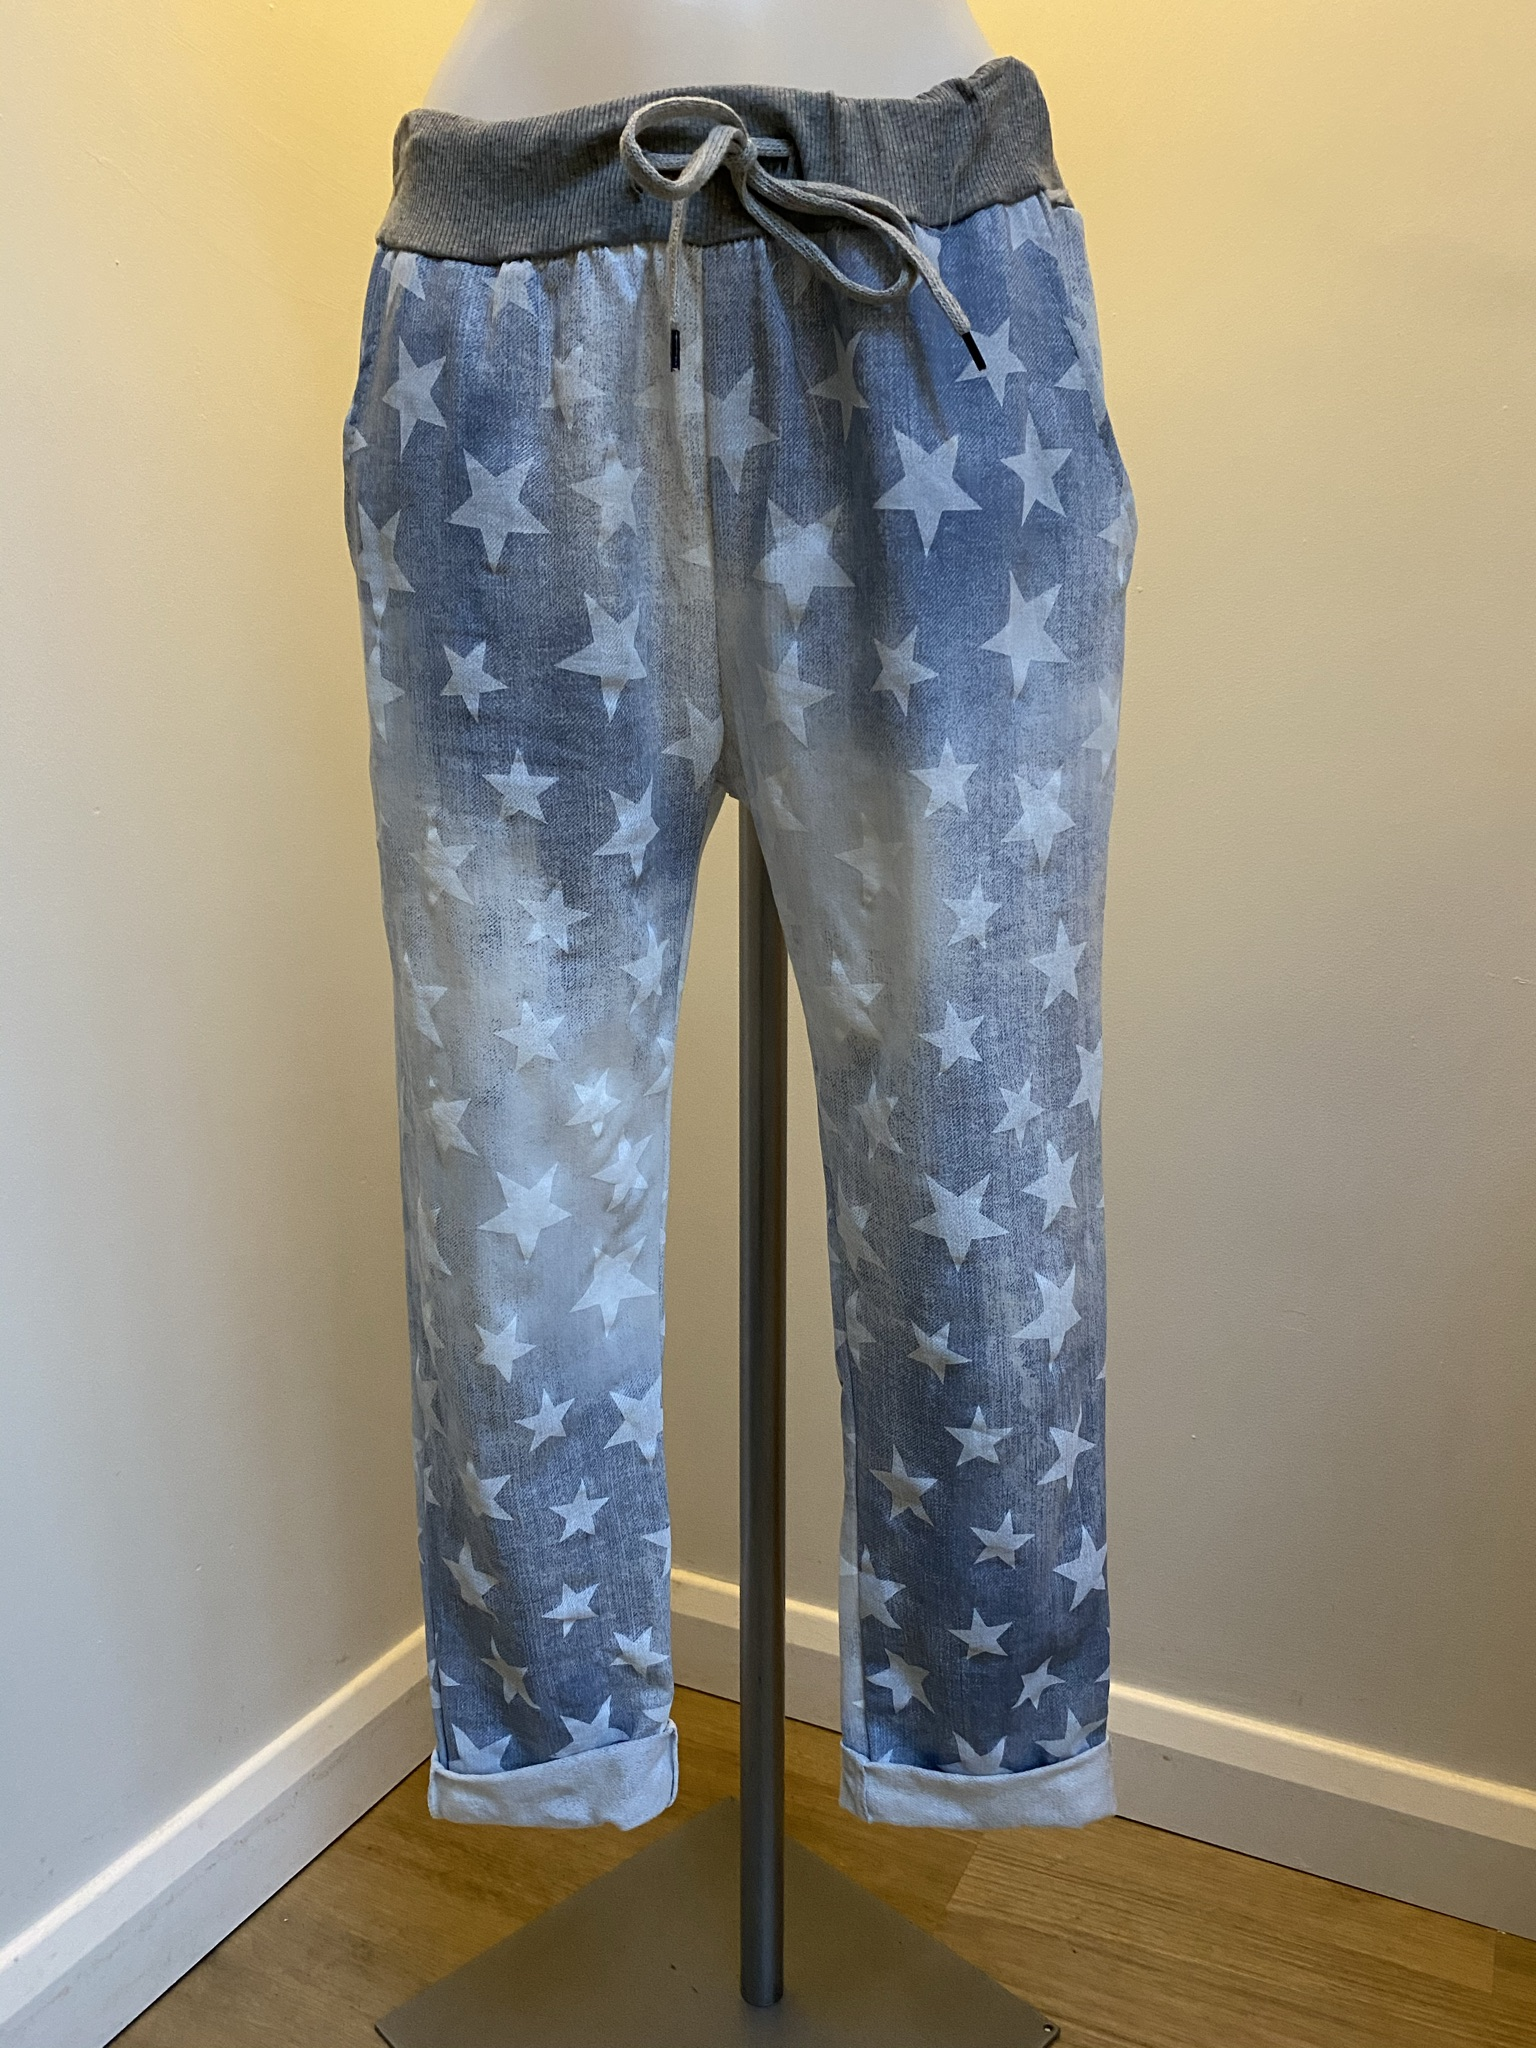 Star Joggers - Available in 2 Designs